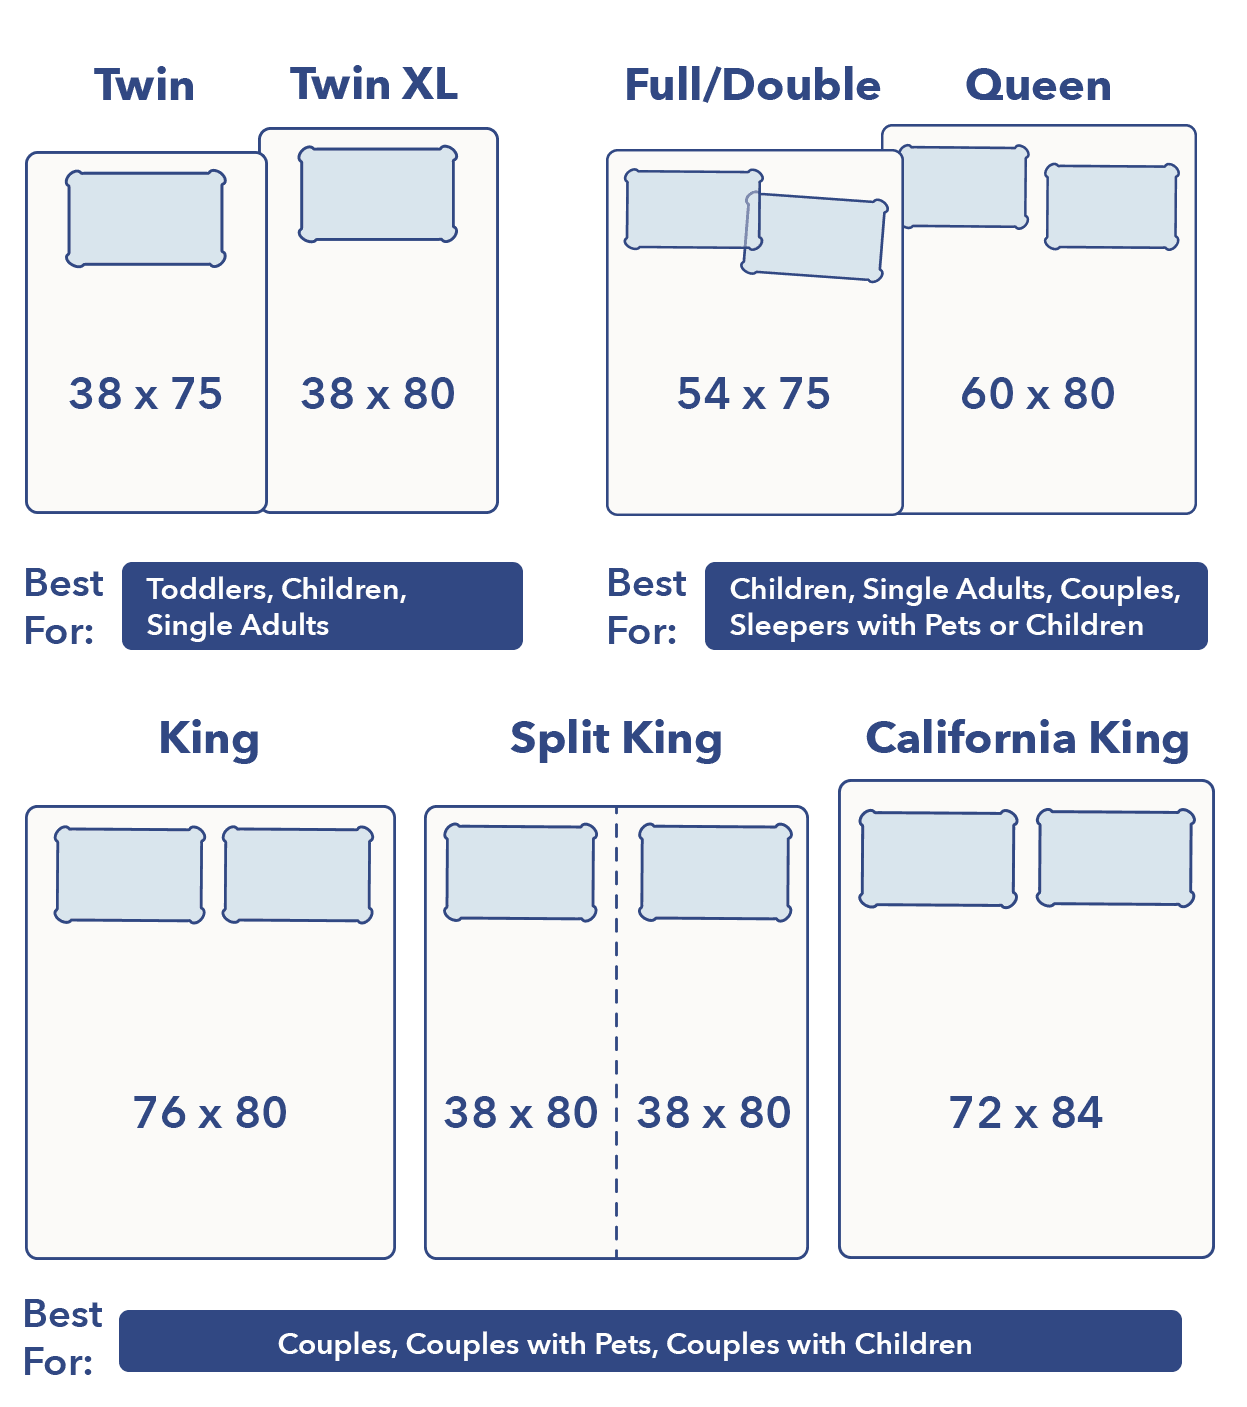 Picture of: Bed Sizes 2020 Exact Dimensions For King Queen And Other Sizes